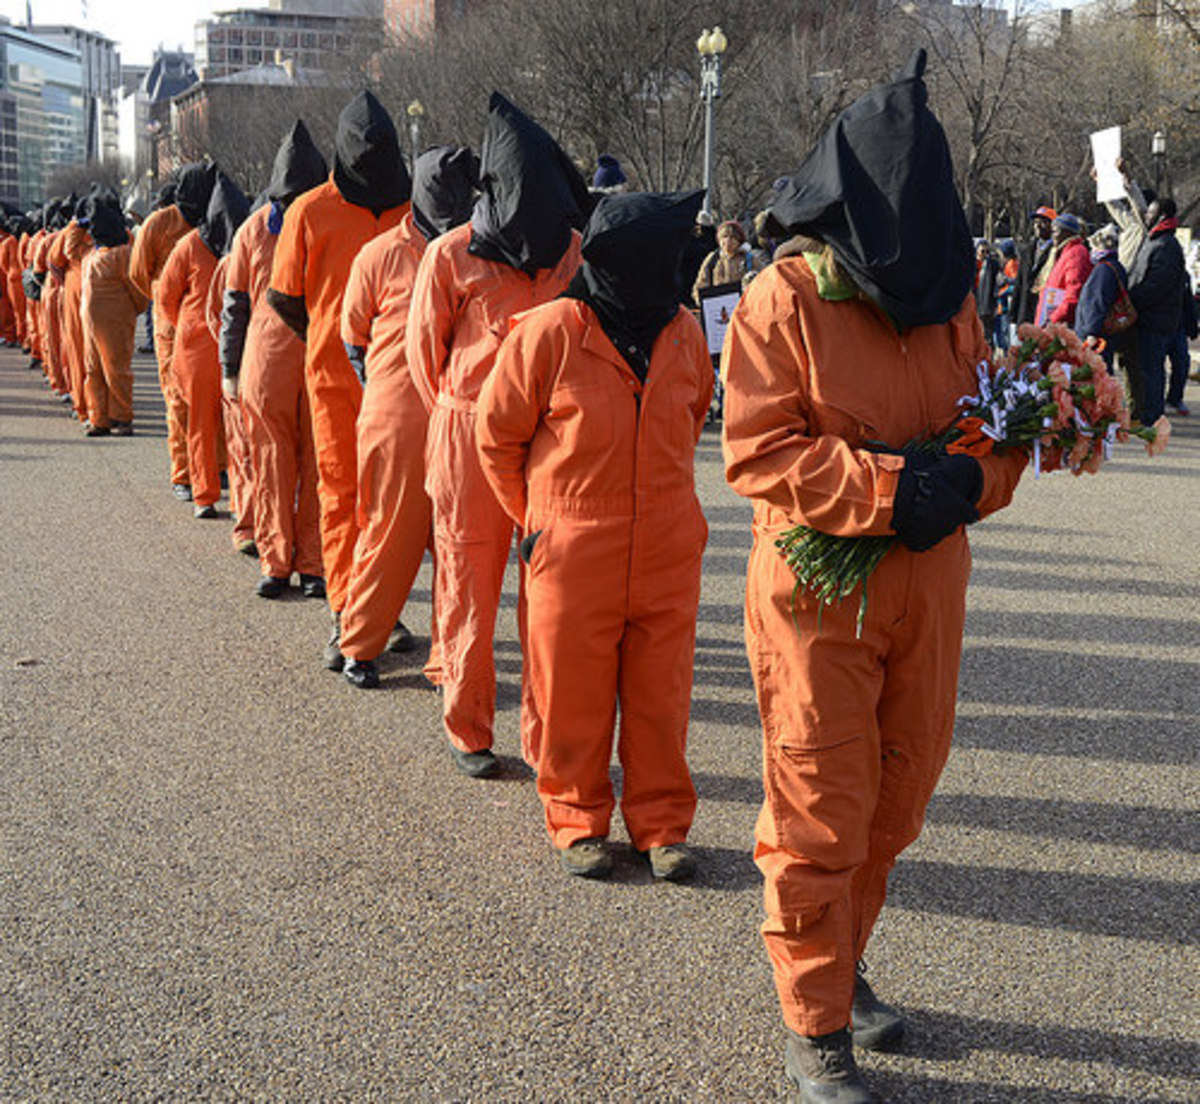 Protest against torture in Washington, D.C.